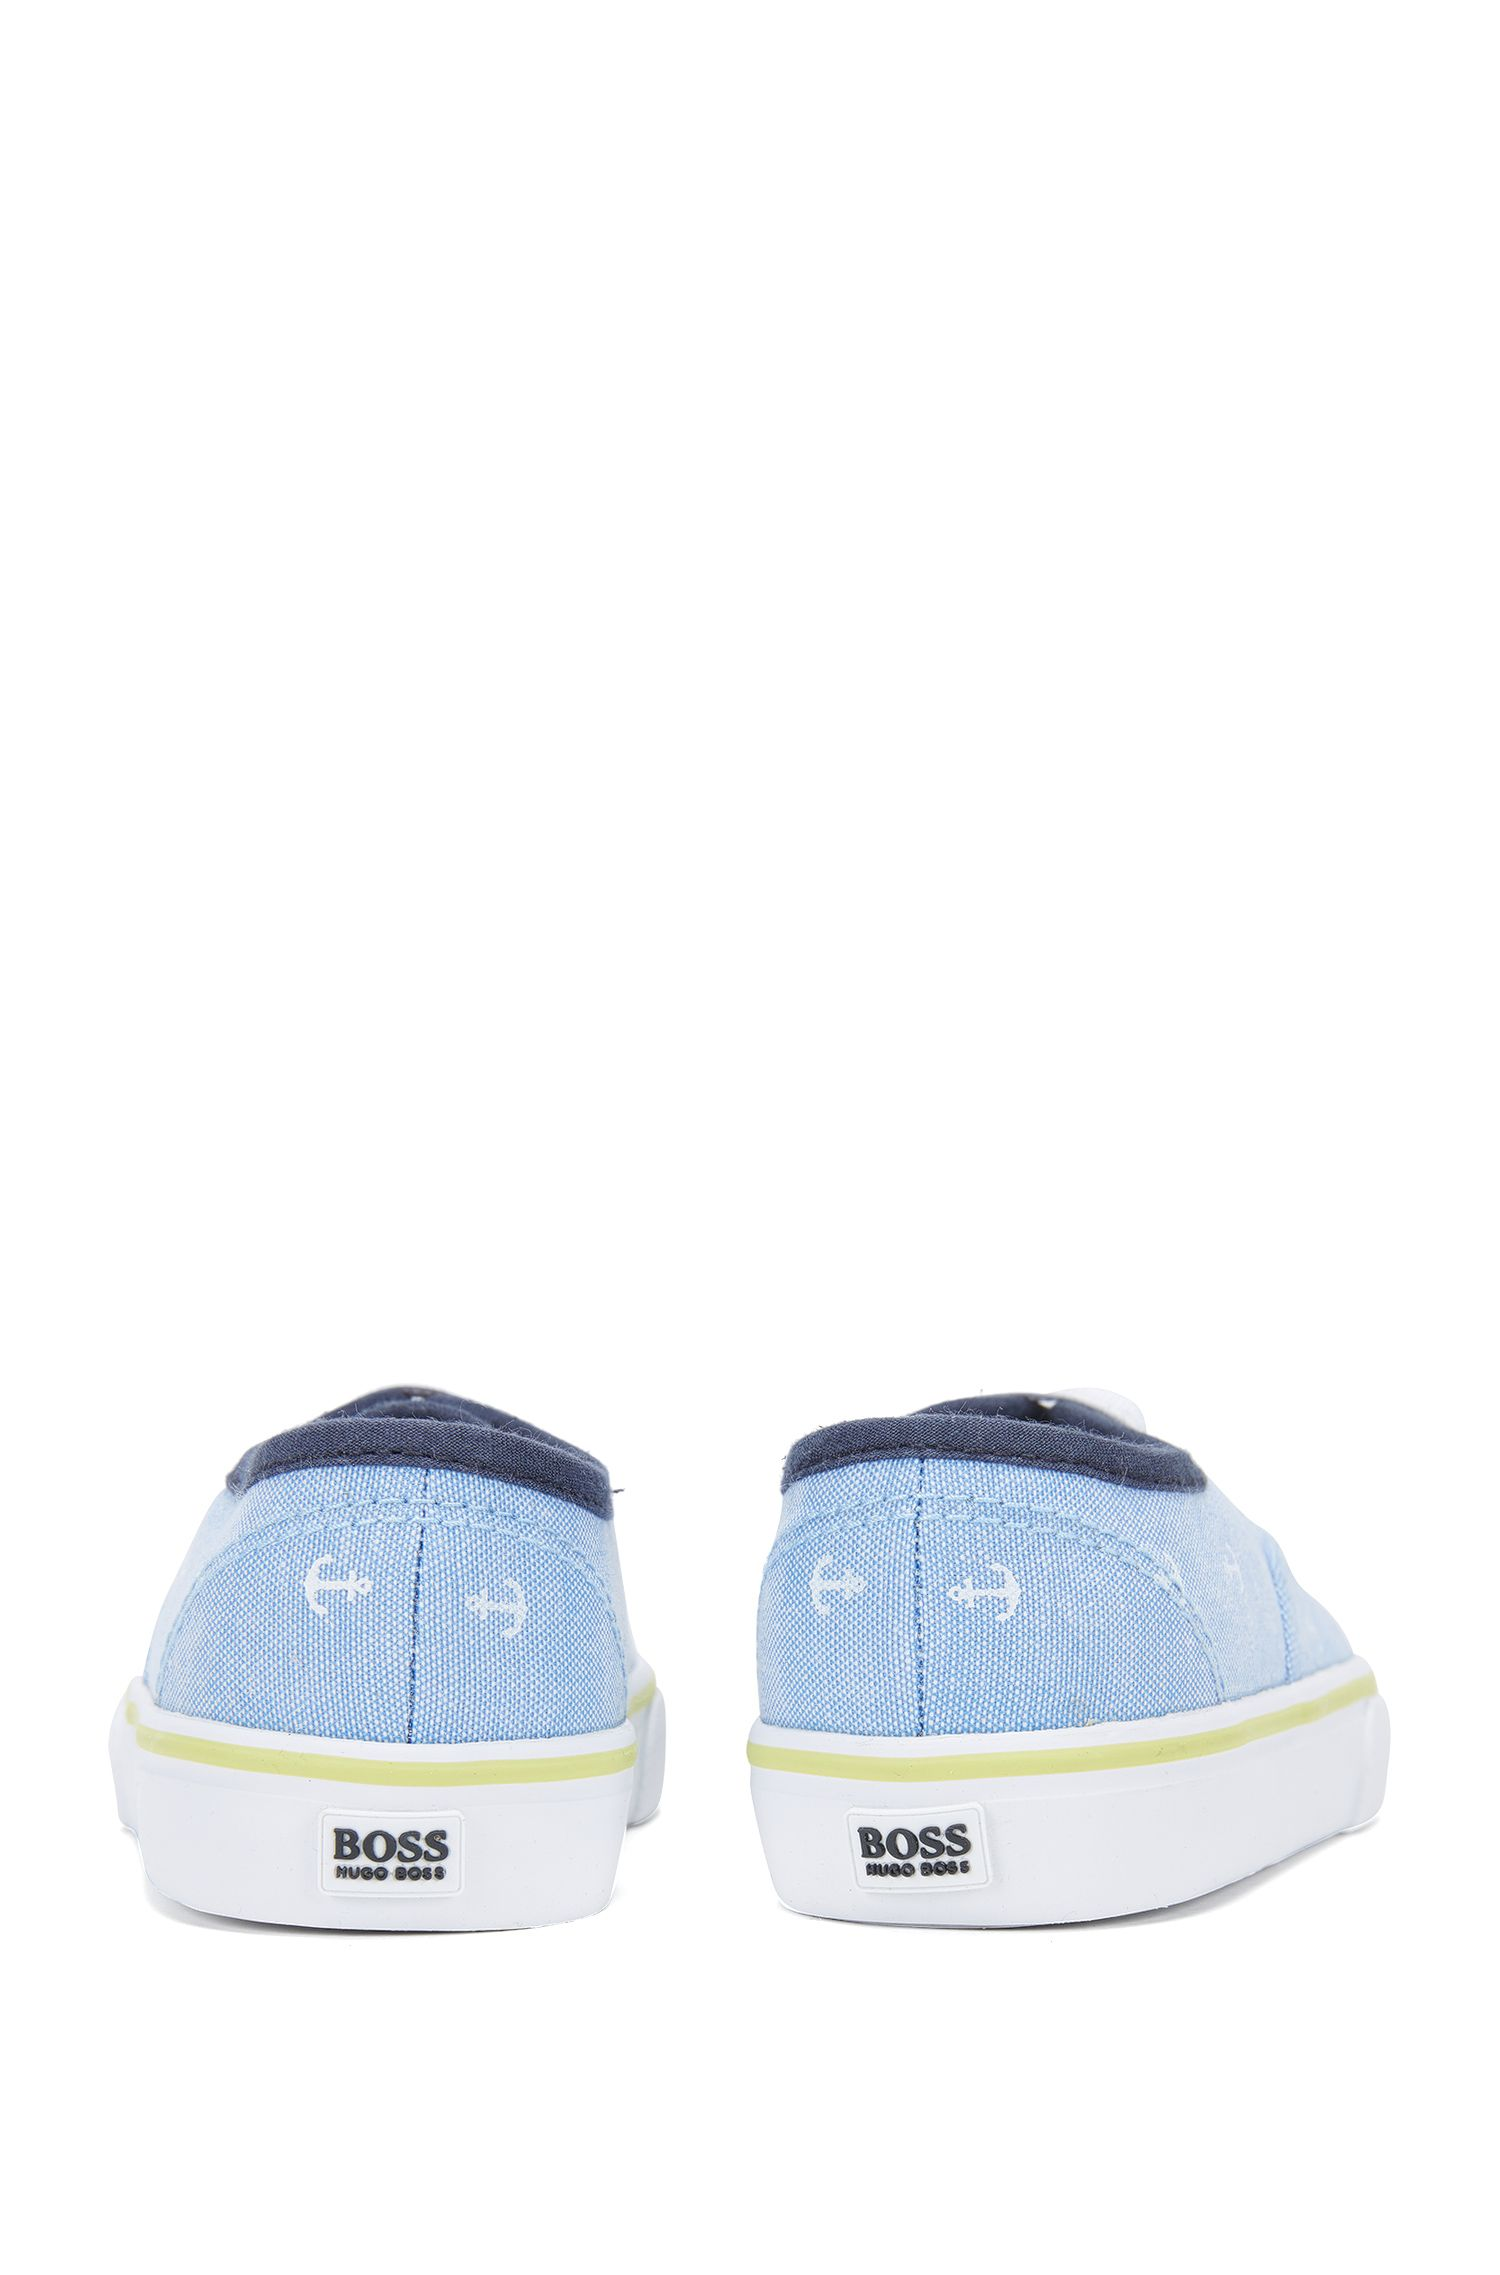 Kids-Sneakers aus bedrucktem Canvas: 'J09090'